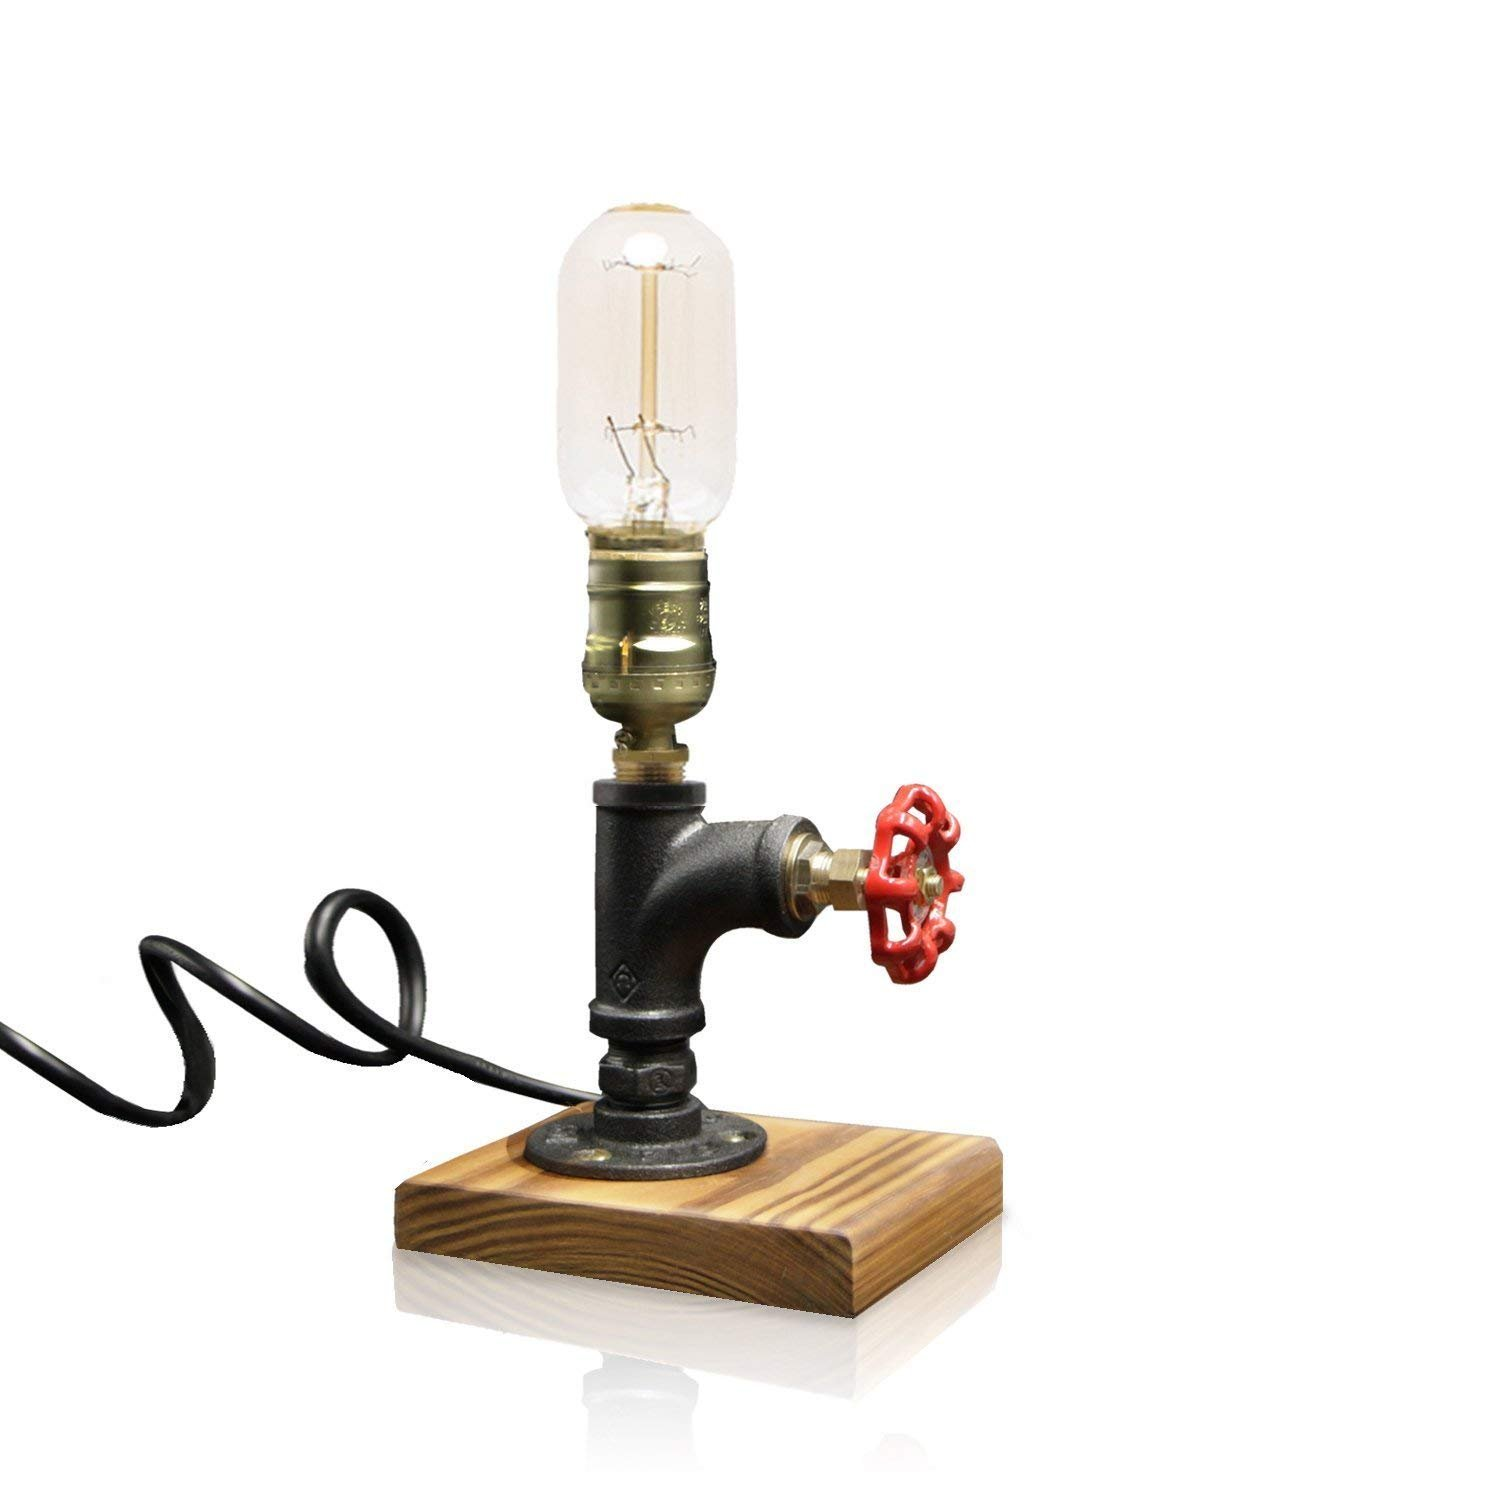 Retro Industrial Vintage Desk Lamp